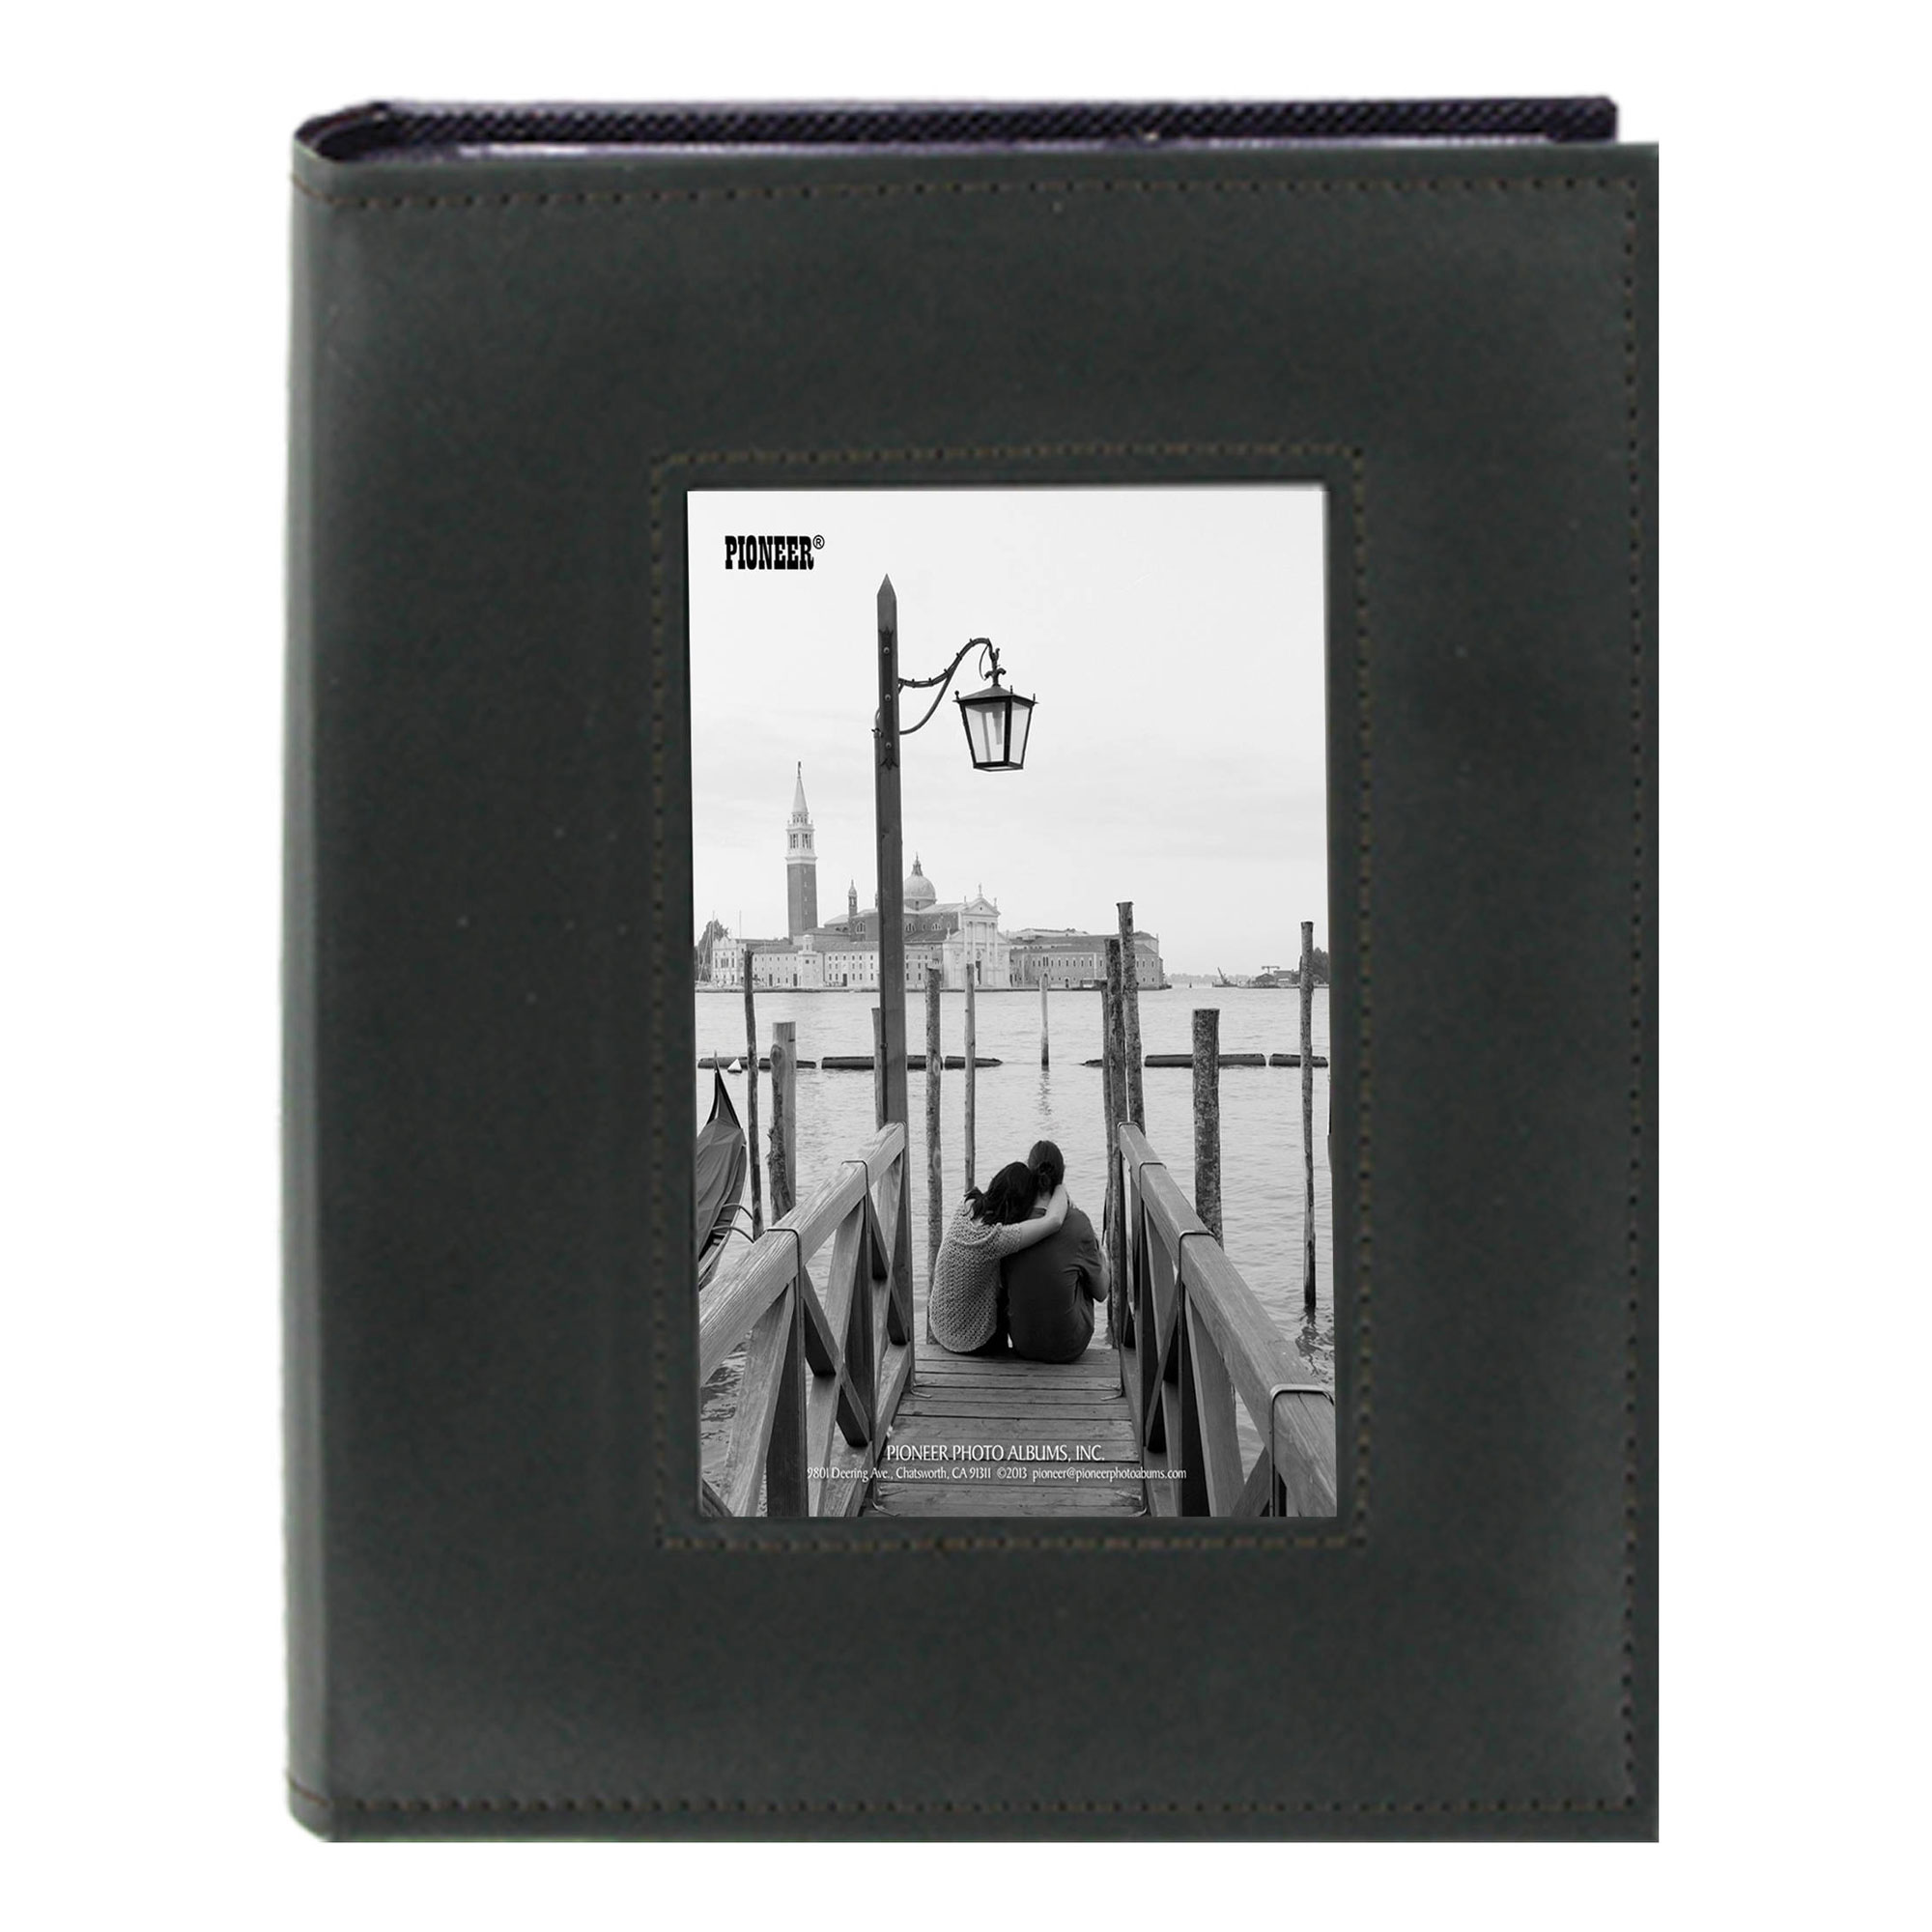 Image of Pioneer 4X6-200 Sewn Frame Photo Album Cutout (Black)